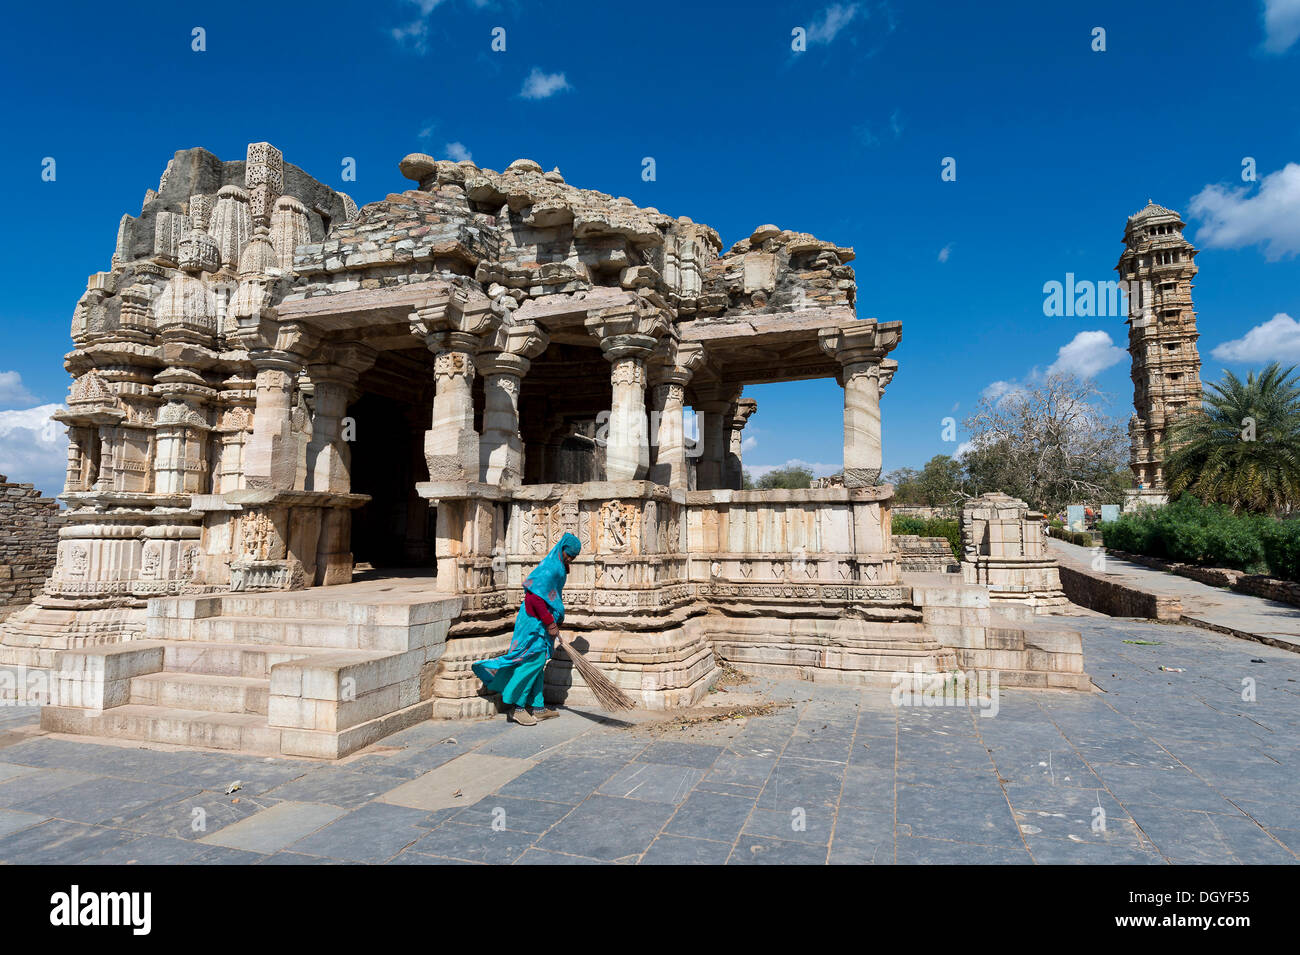 Woman sweeping the stone slabs in front of temple ruins, Vijaya Stambha, a victory tower built during the reign of Rana Kumbha - Stock Image